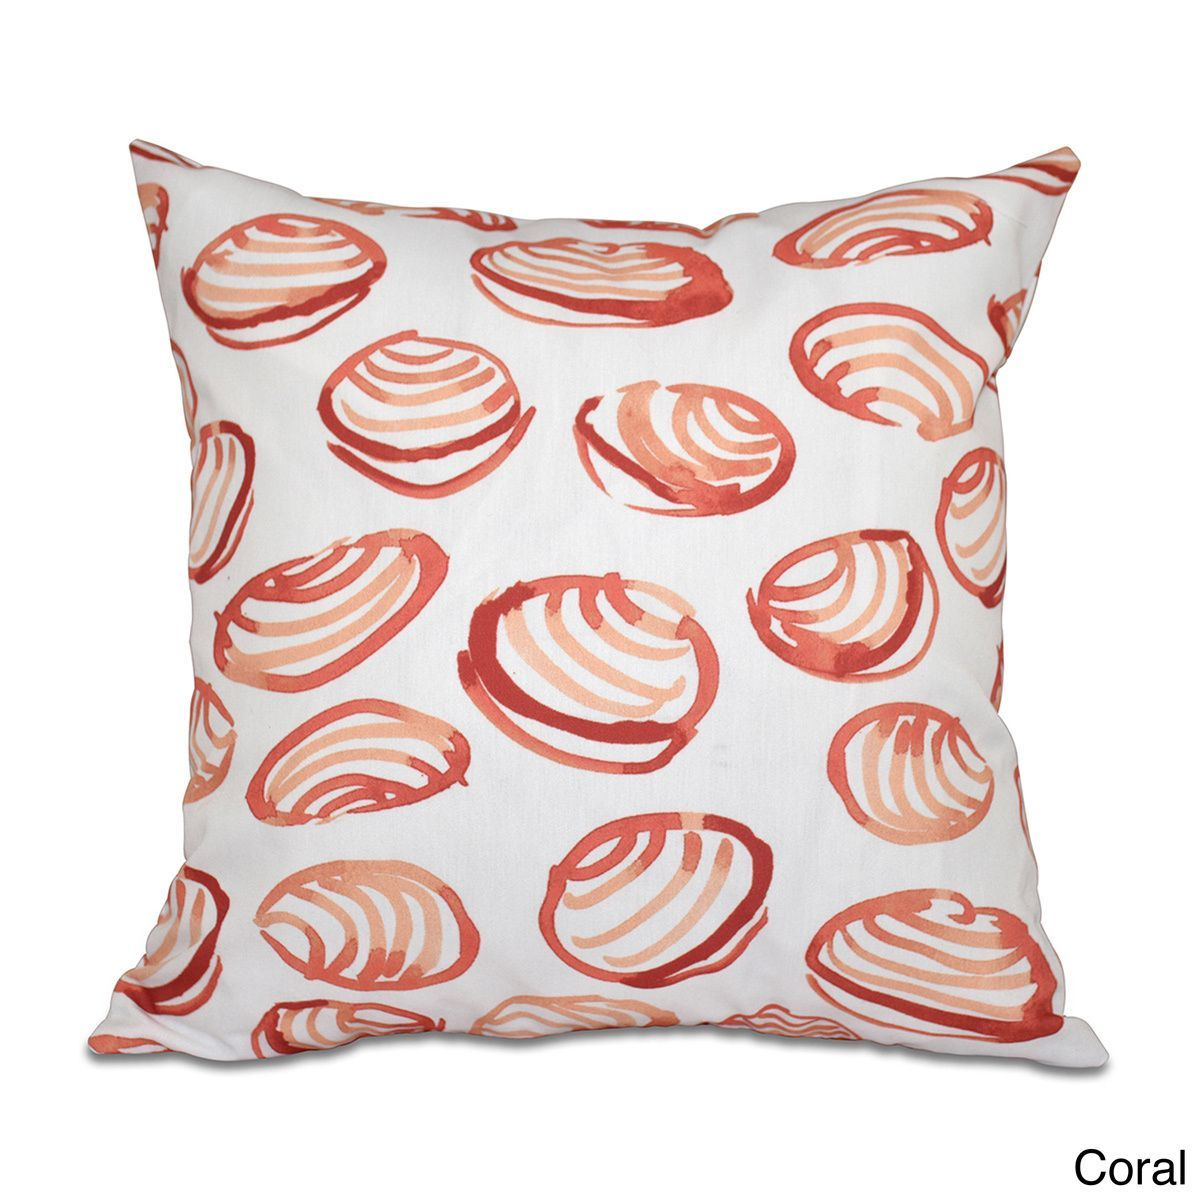 E by design clams geometric print inch throw pillow products